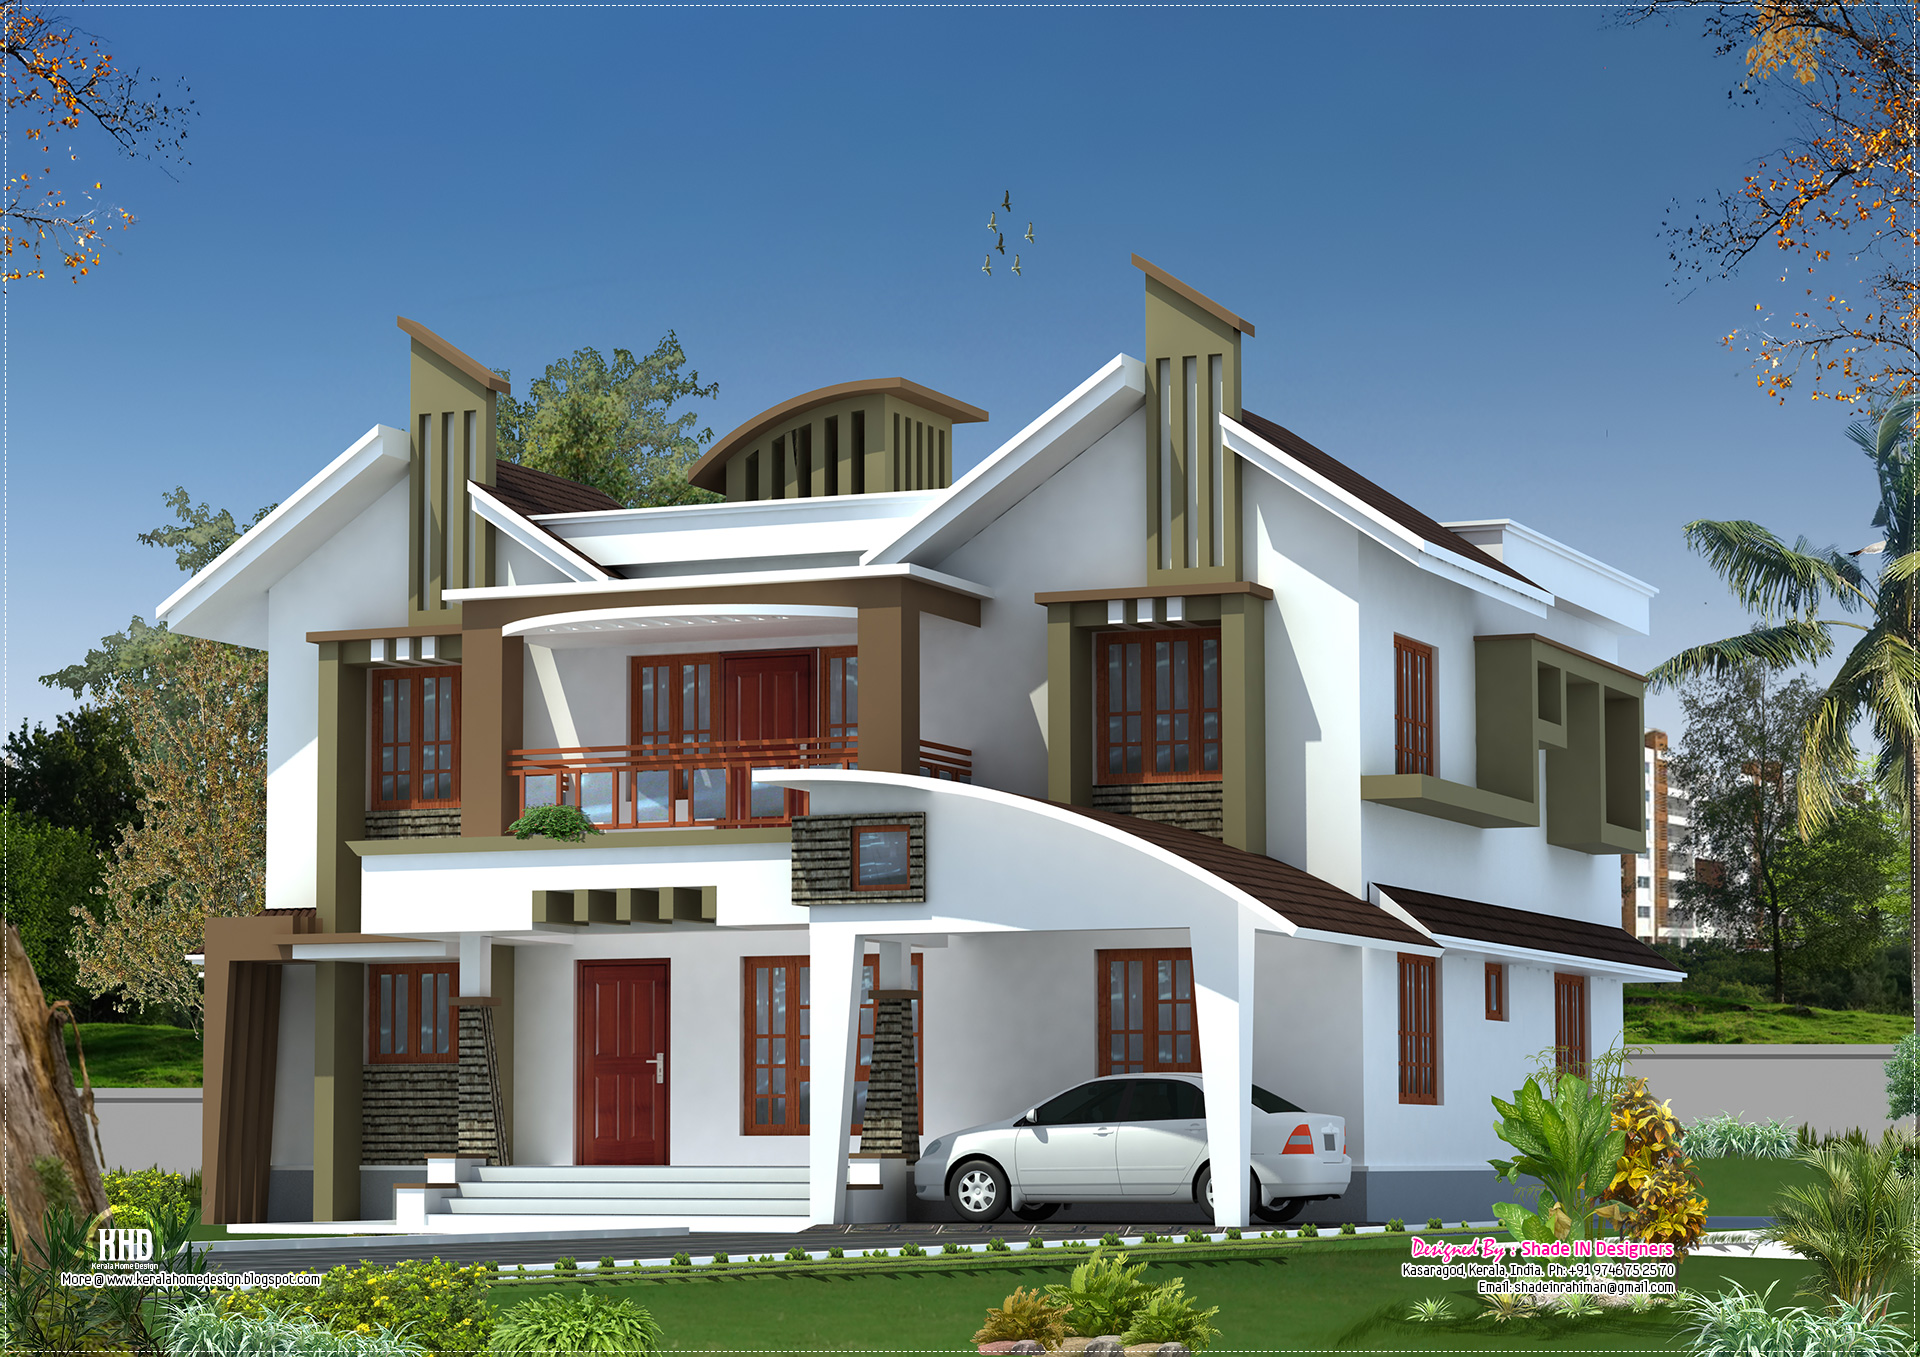 Modern house elevation from kasaragod kerala kerala for Kerala style home designs and elevations